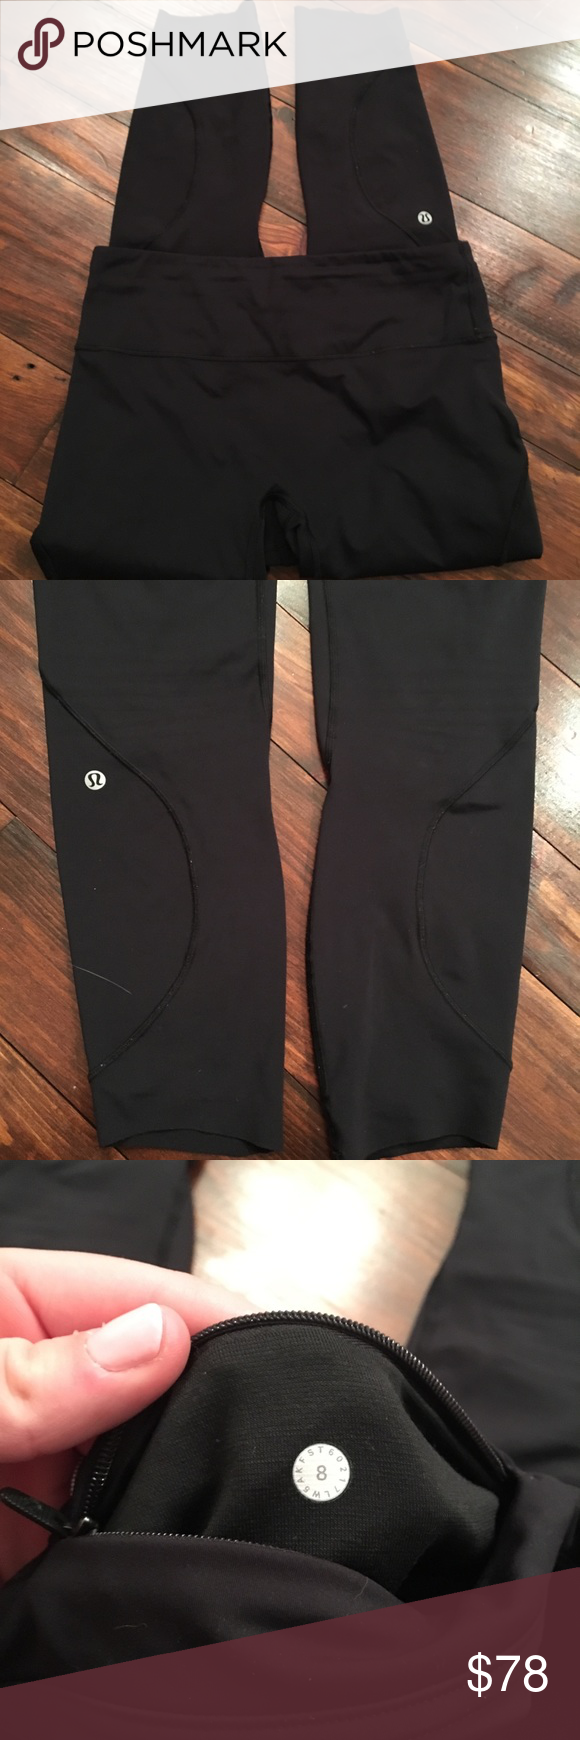 a1b4a849bb7fa6 Lululemon leggings 7/8 length size 8 lululemon leggings. The style is  unknown but